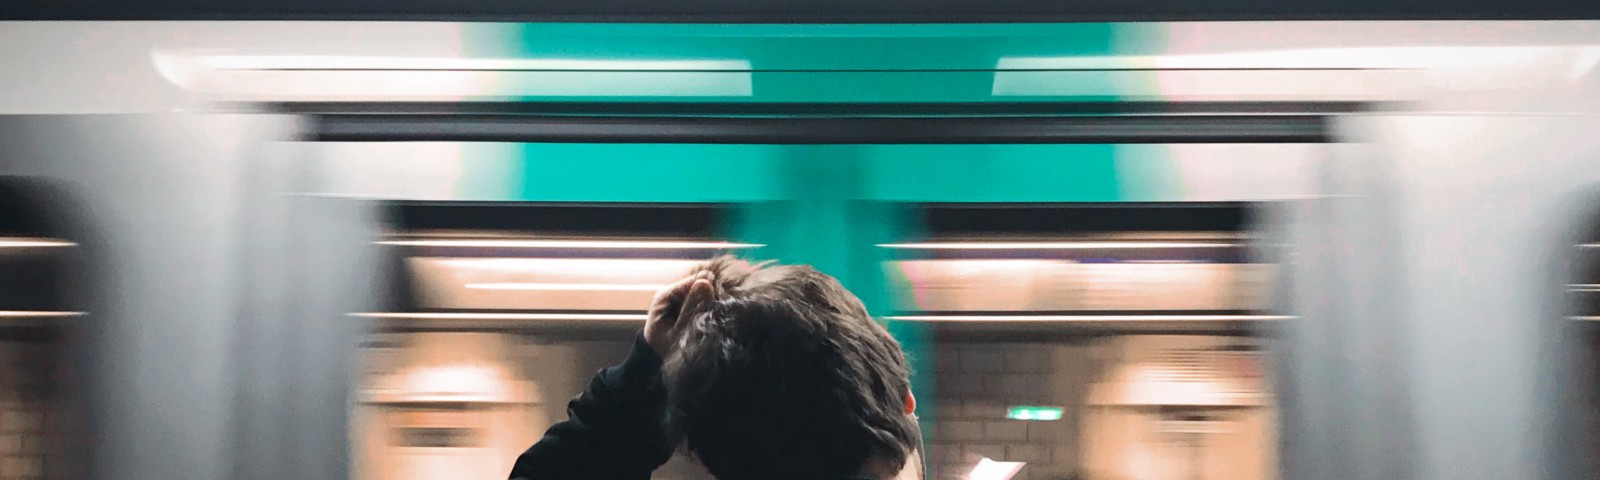 A man scratching his head as he loses focus of a train in front of him